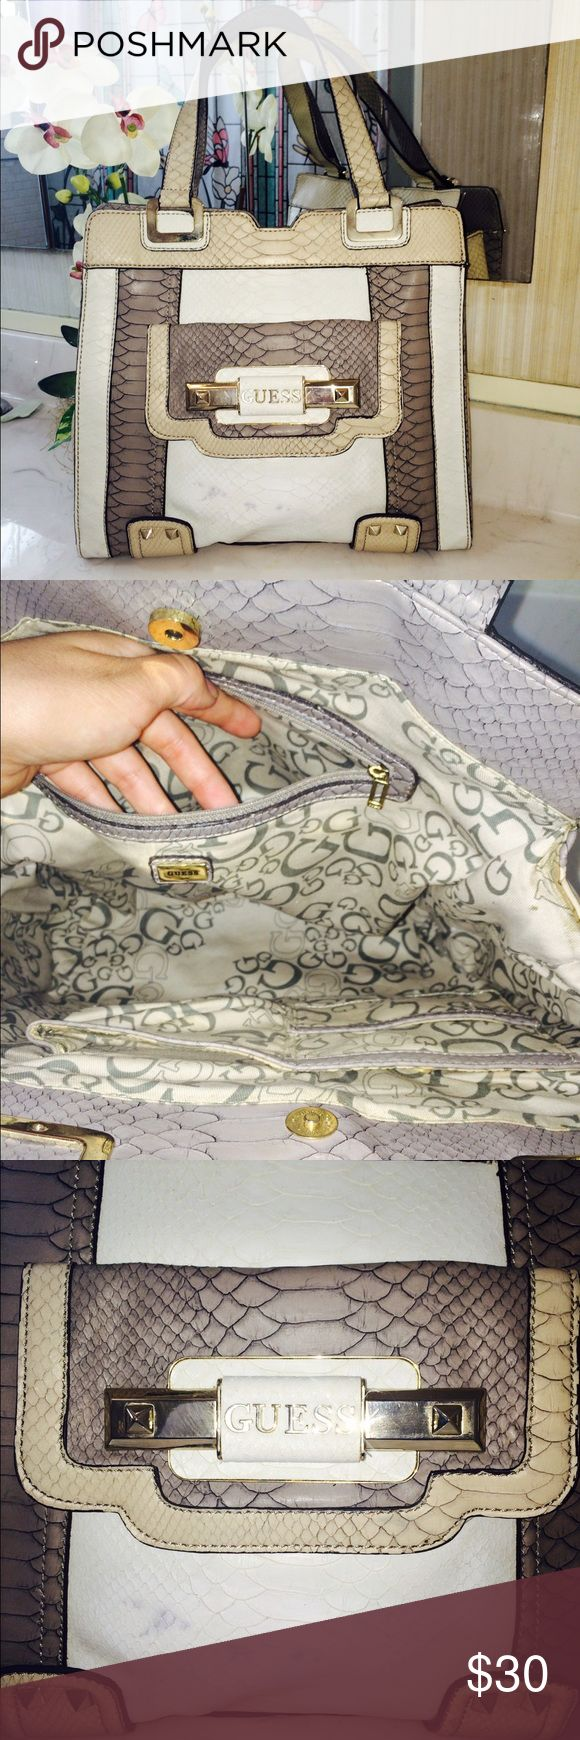 ‼️🌟👜GUESS BAG👜 ⚠️‼️has a small stain on front‼️⚠️.  of the rest is perfect.✅👍🏼💁🏻👜 authentic 100% Guess Bags